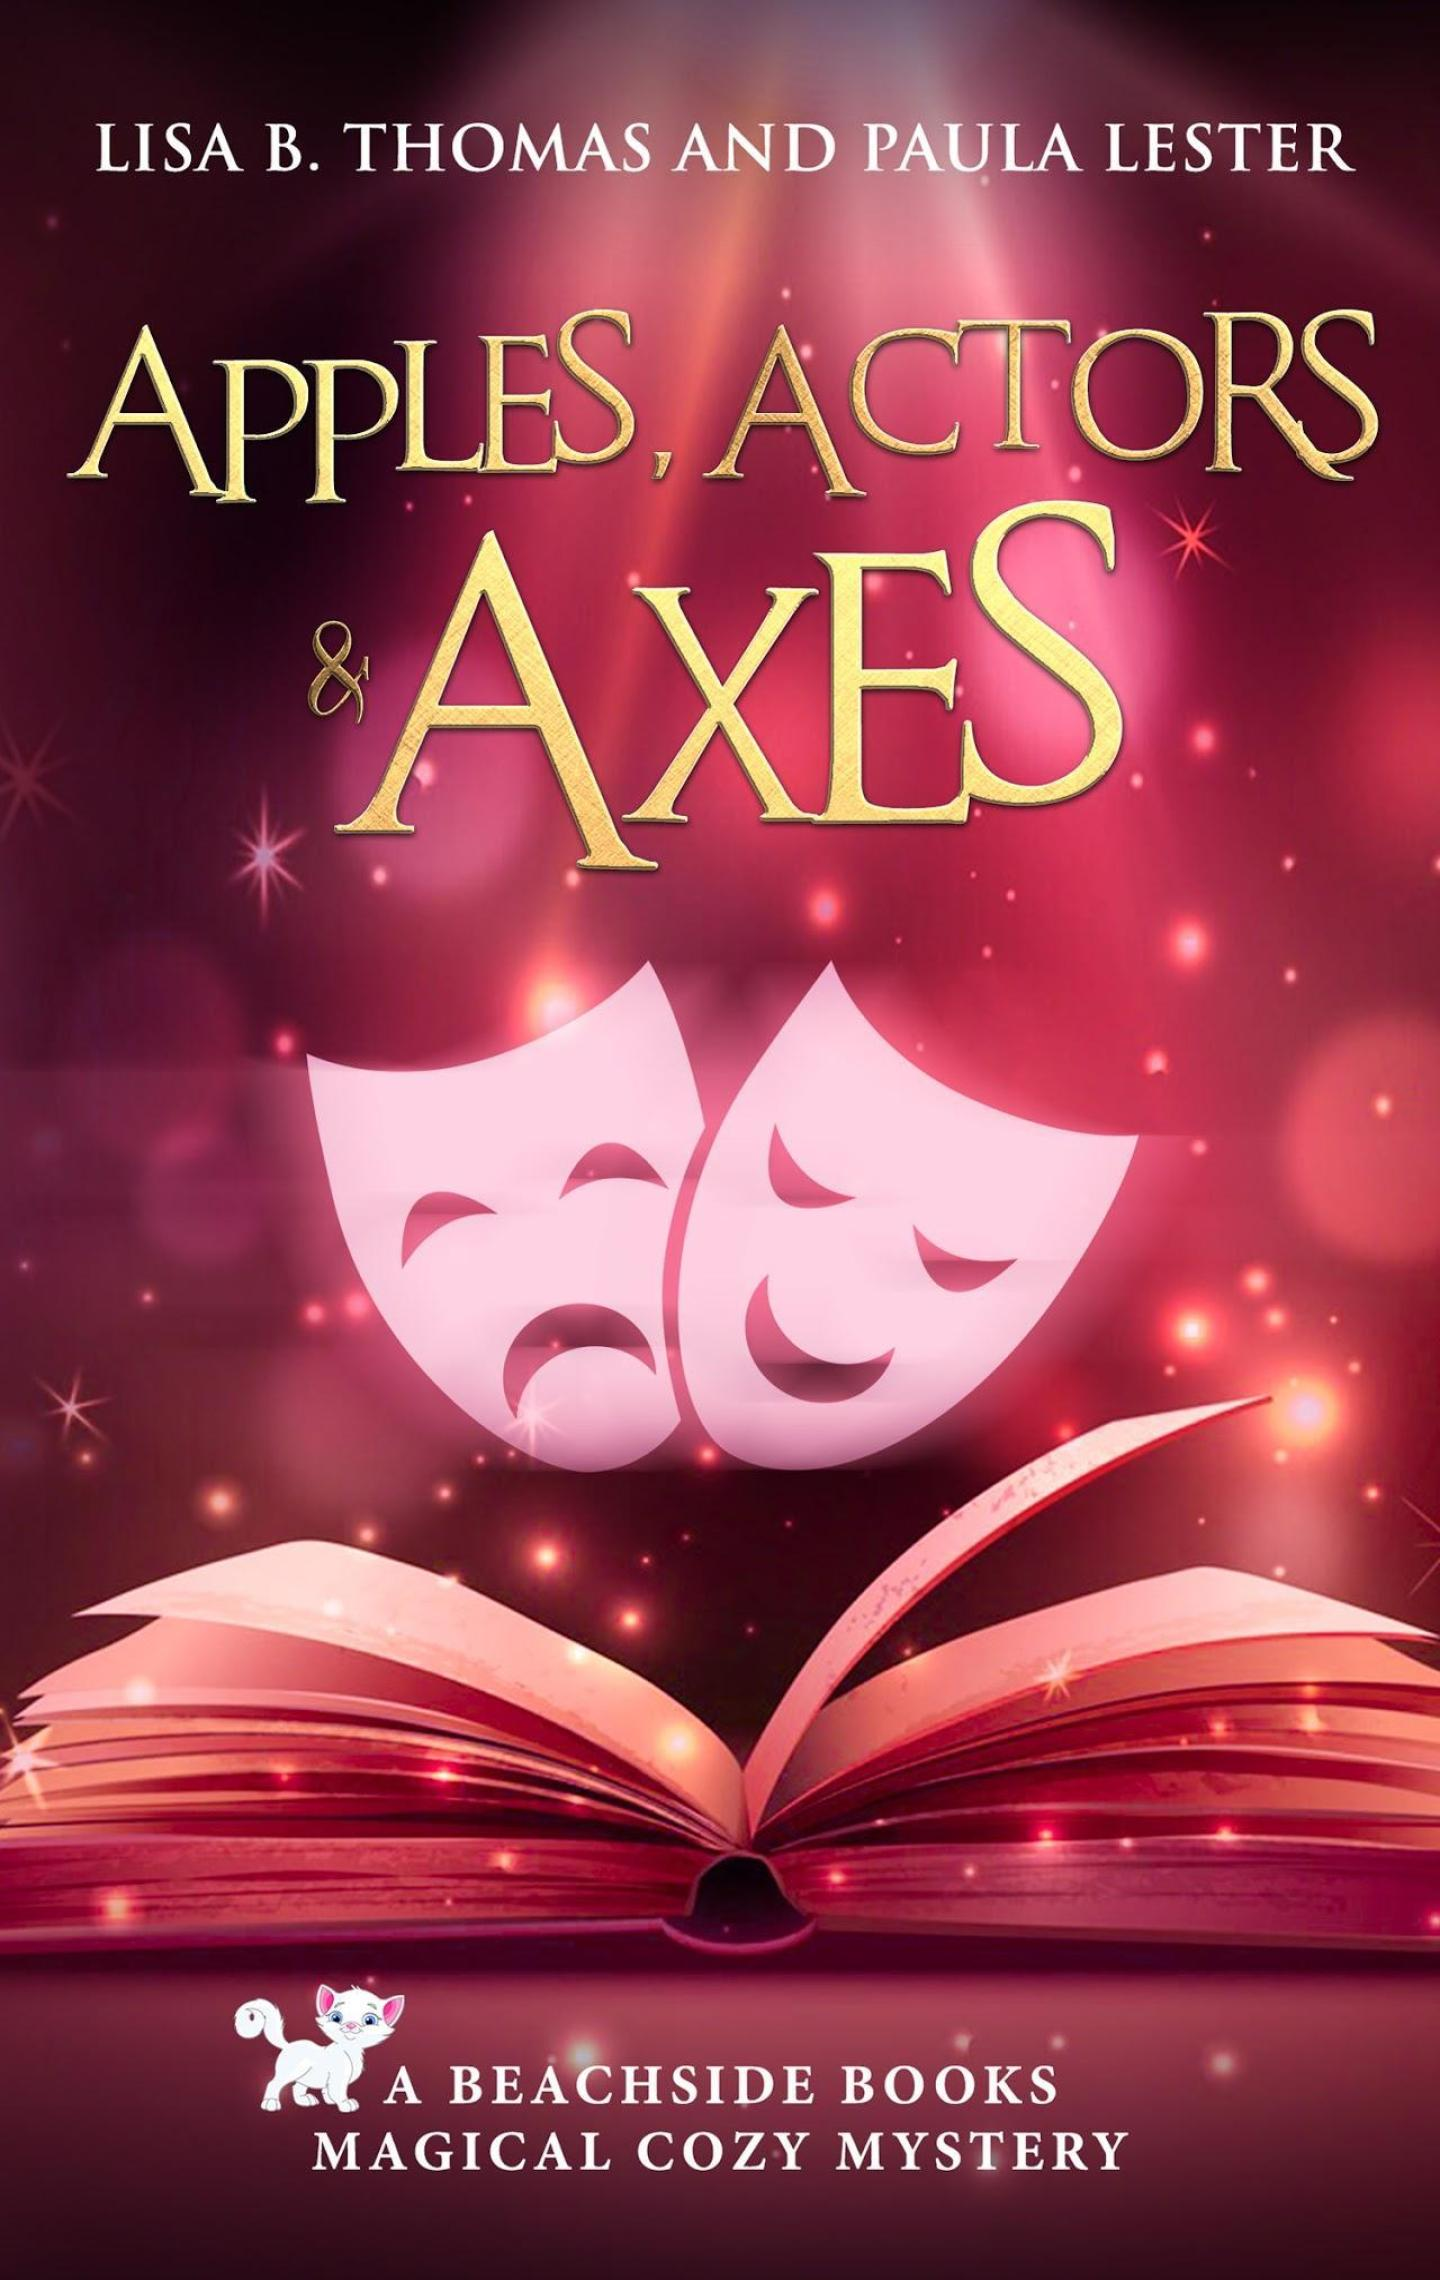 Apples, Actors and Axes (Beachside Books 2)